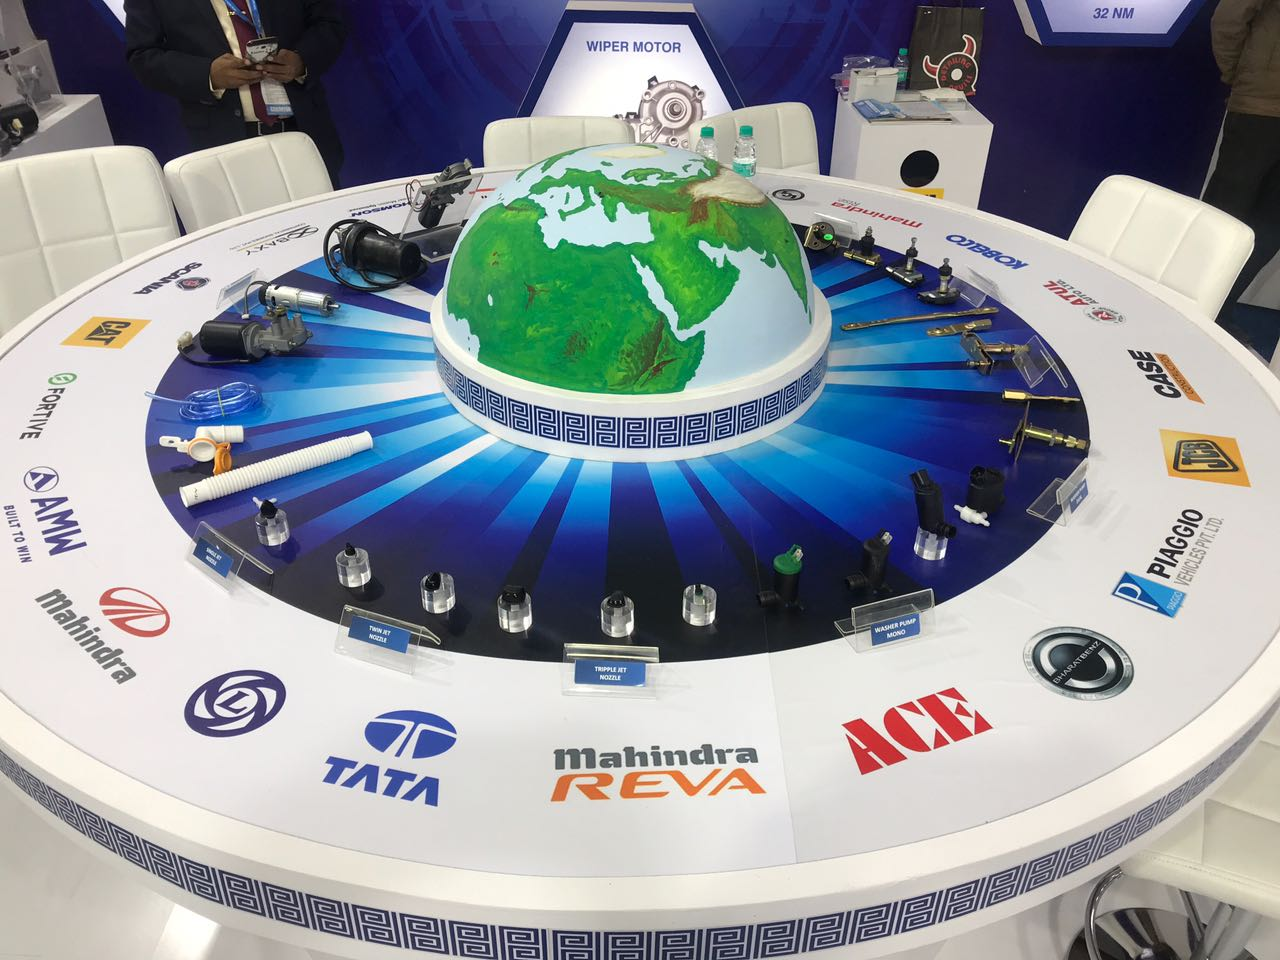 <p>Prabha Engineering has tied up with DY Auto from South Korea to develop the new gen wiper system. Lighter and more efficient than before. Complies with ARAI regulations.</p>